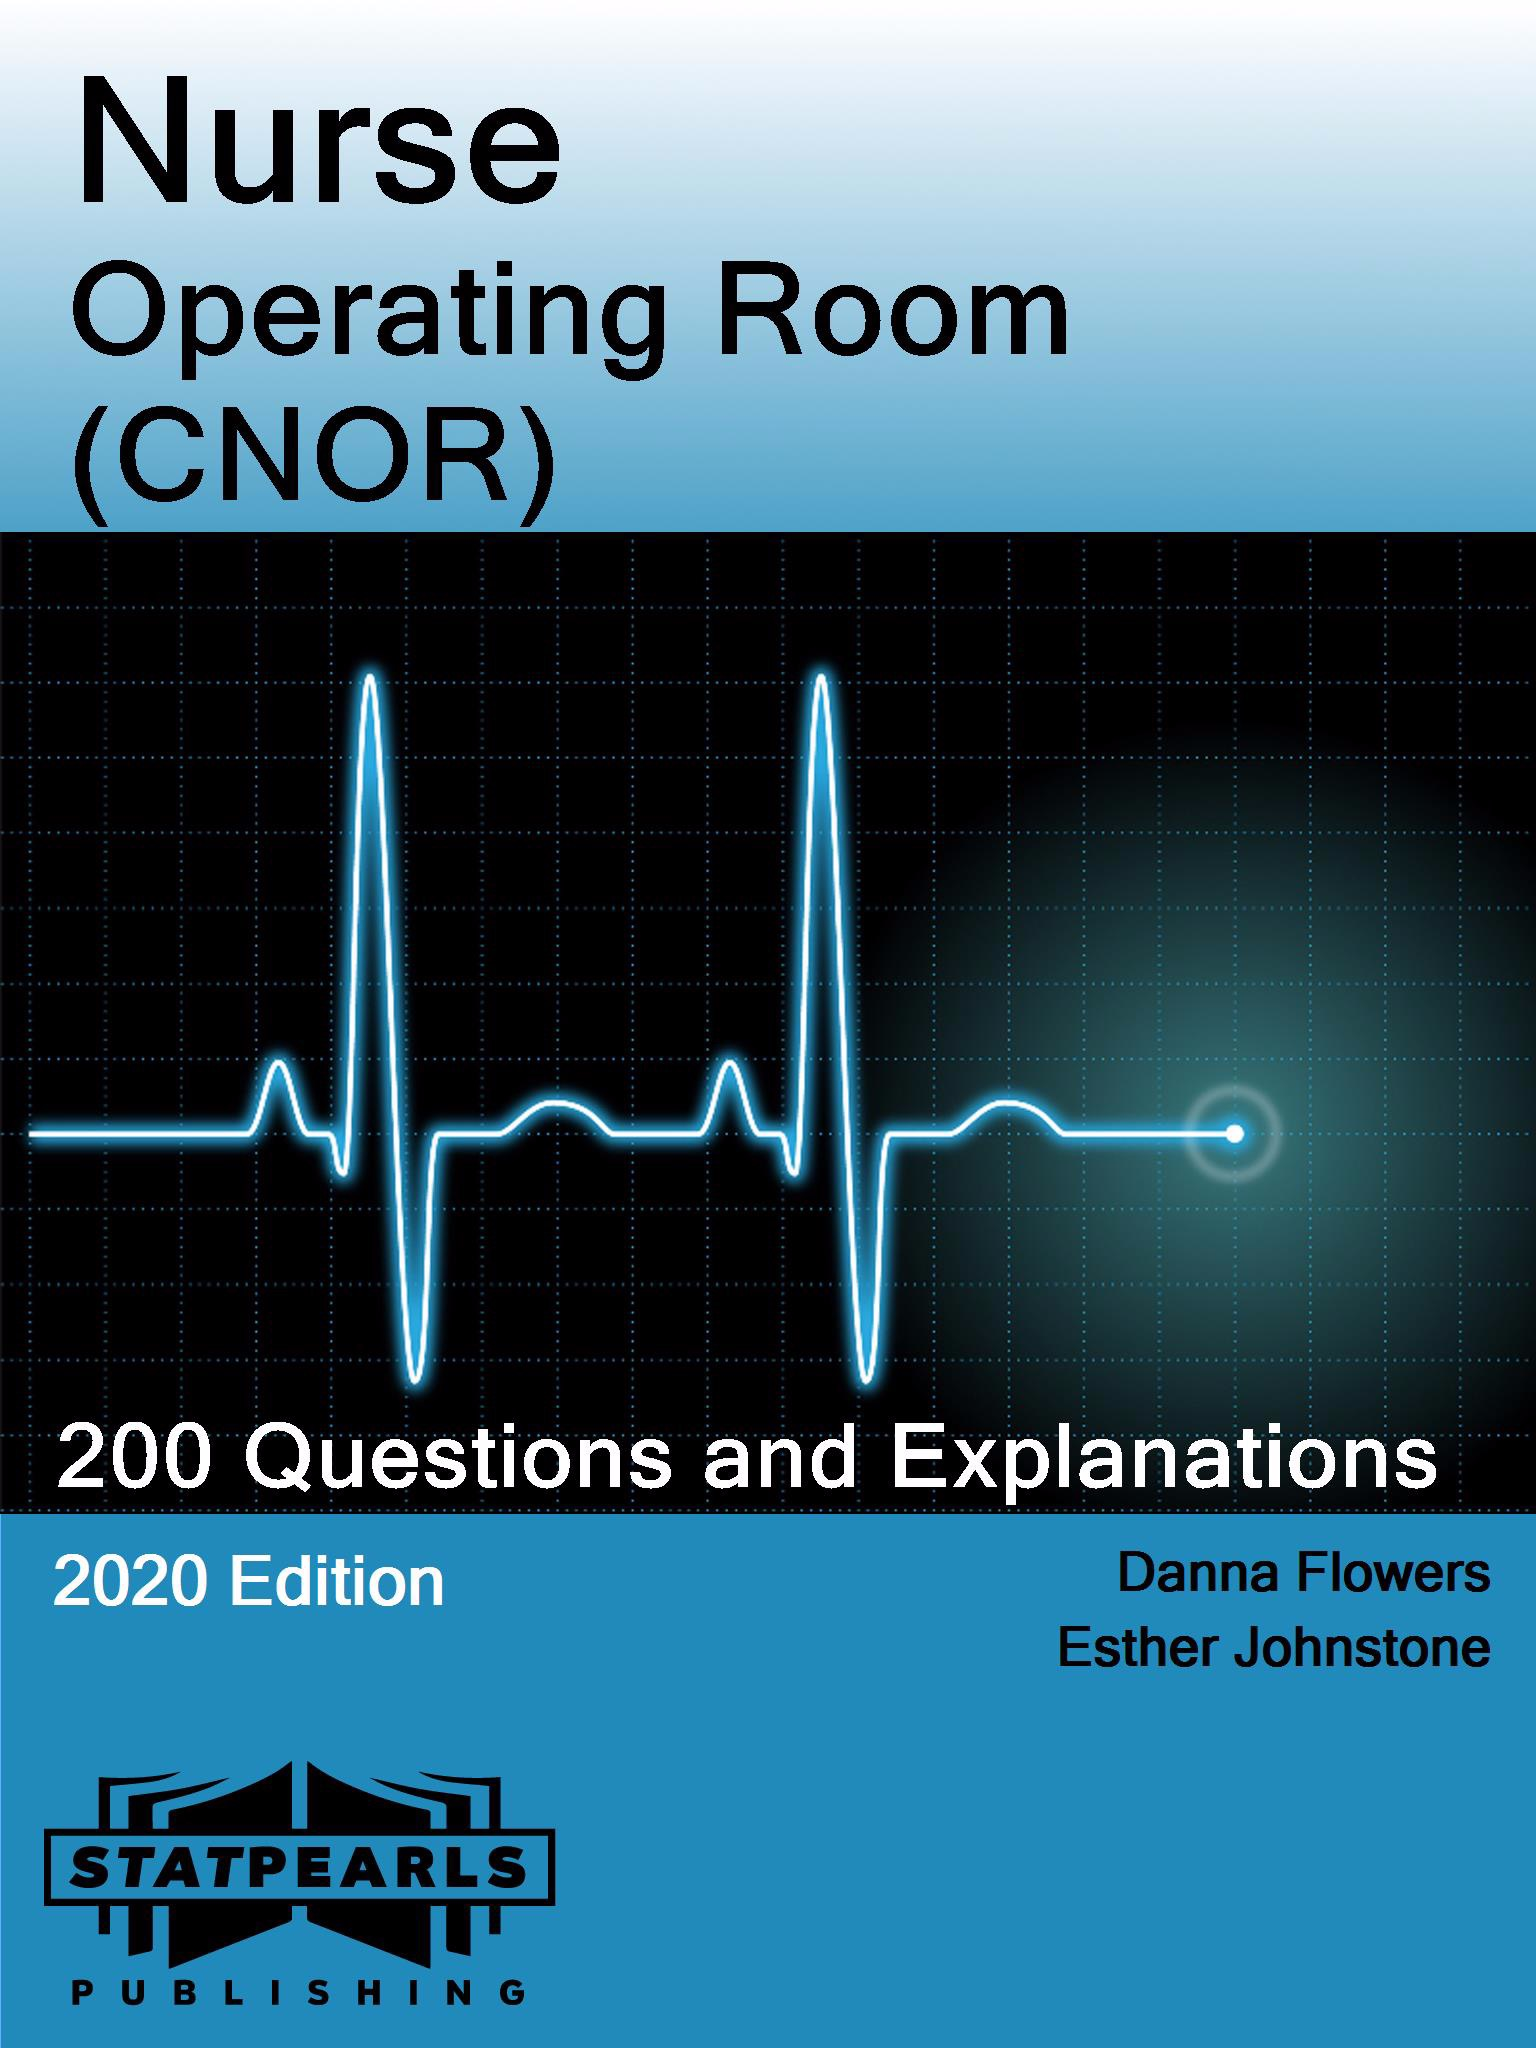 Nurse Operating Room (CNOR)